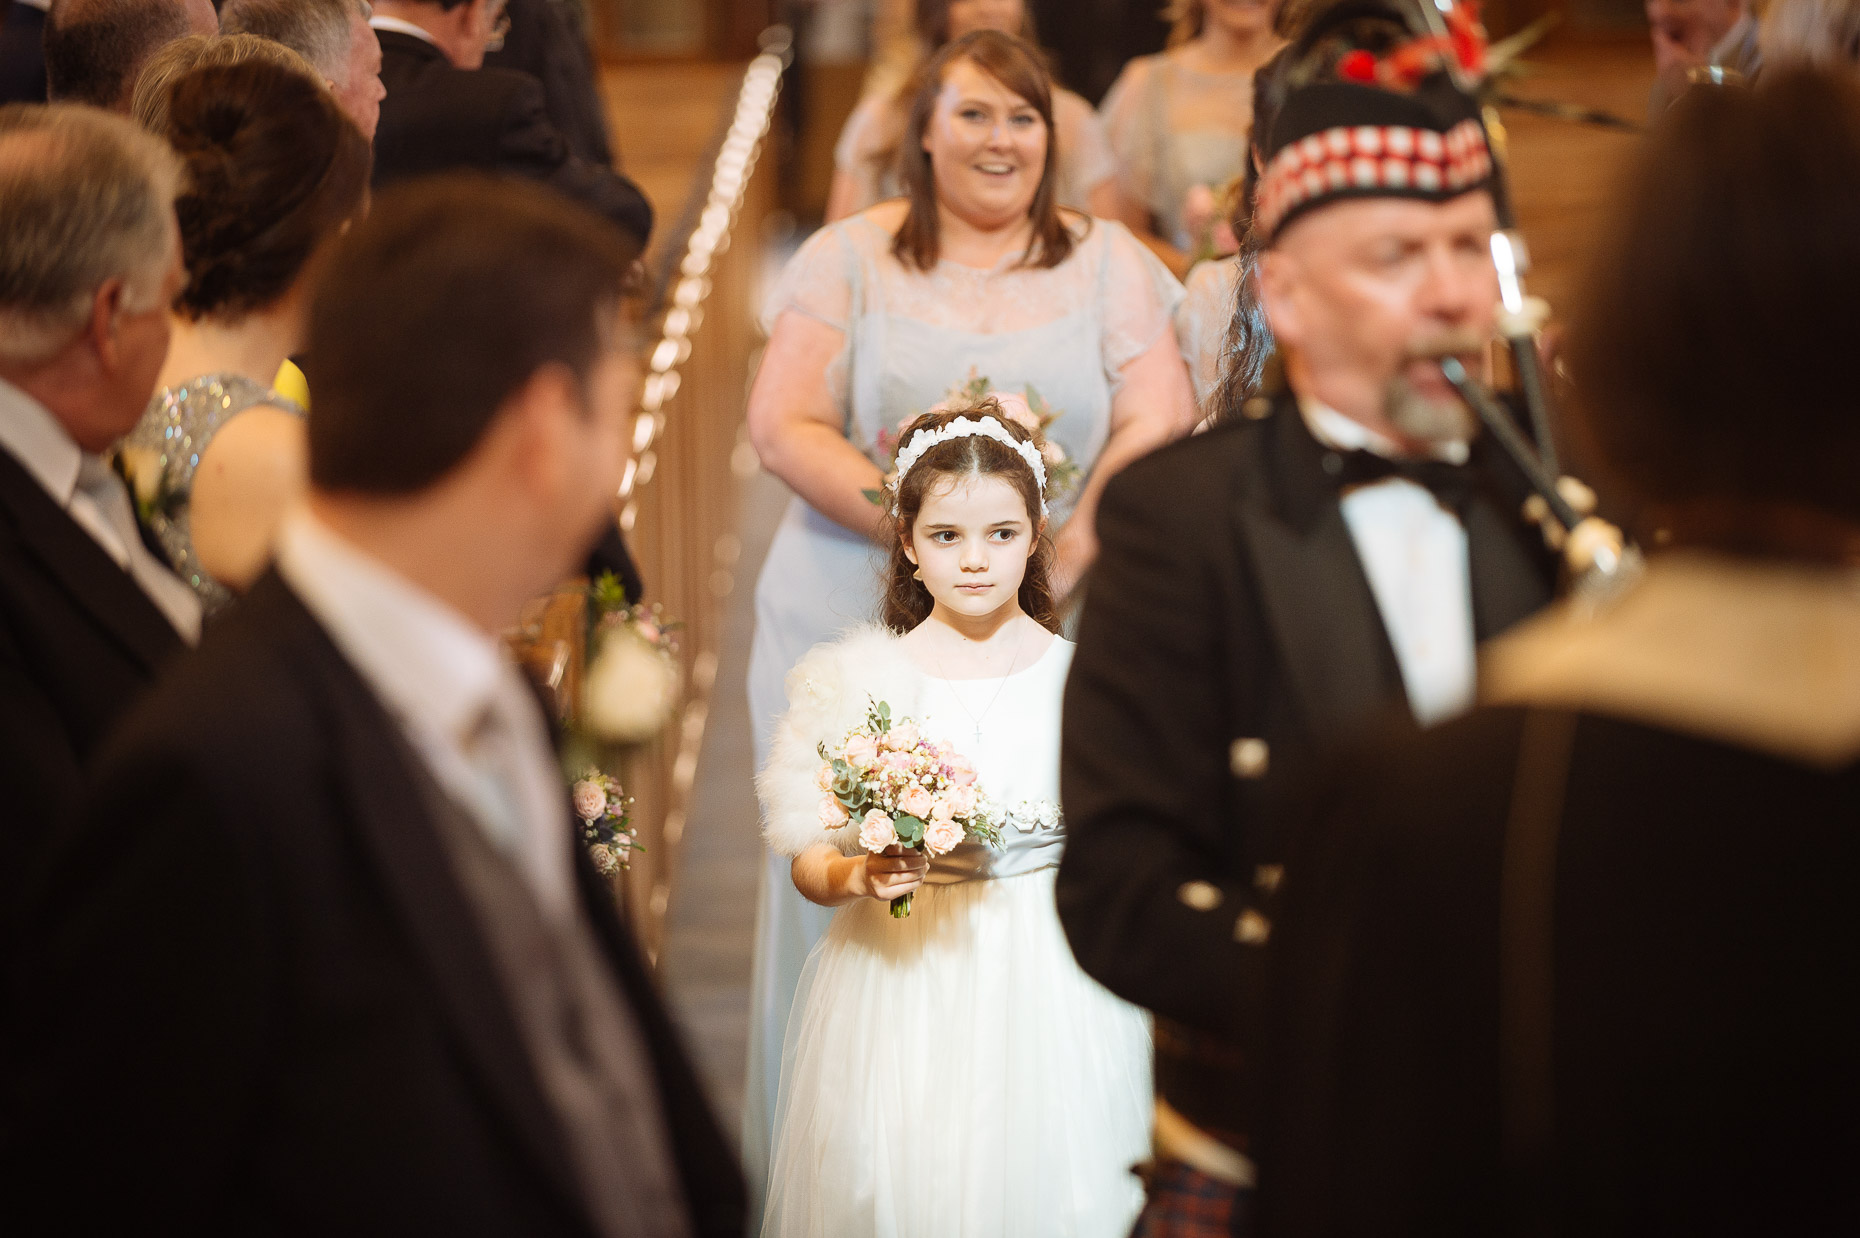 st-columba-church-wedding-flowergirl-aisle-london-photo-08